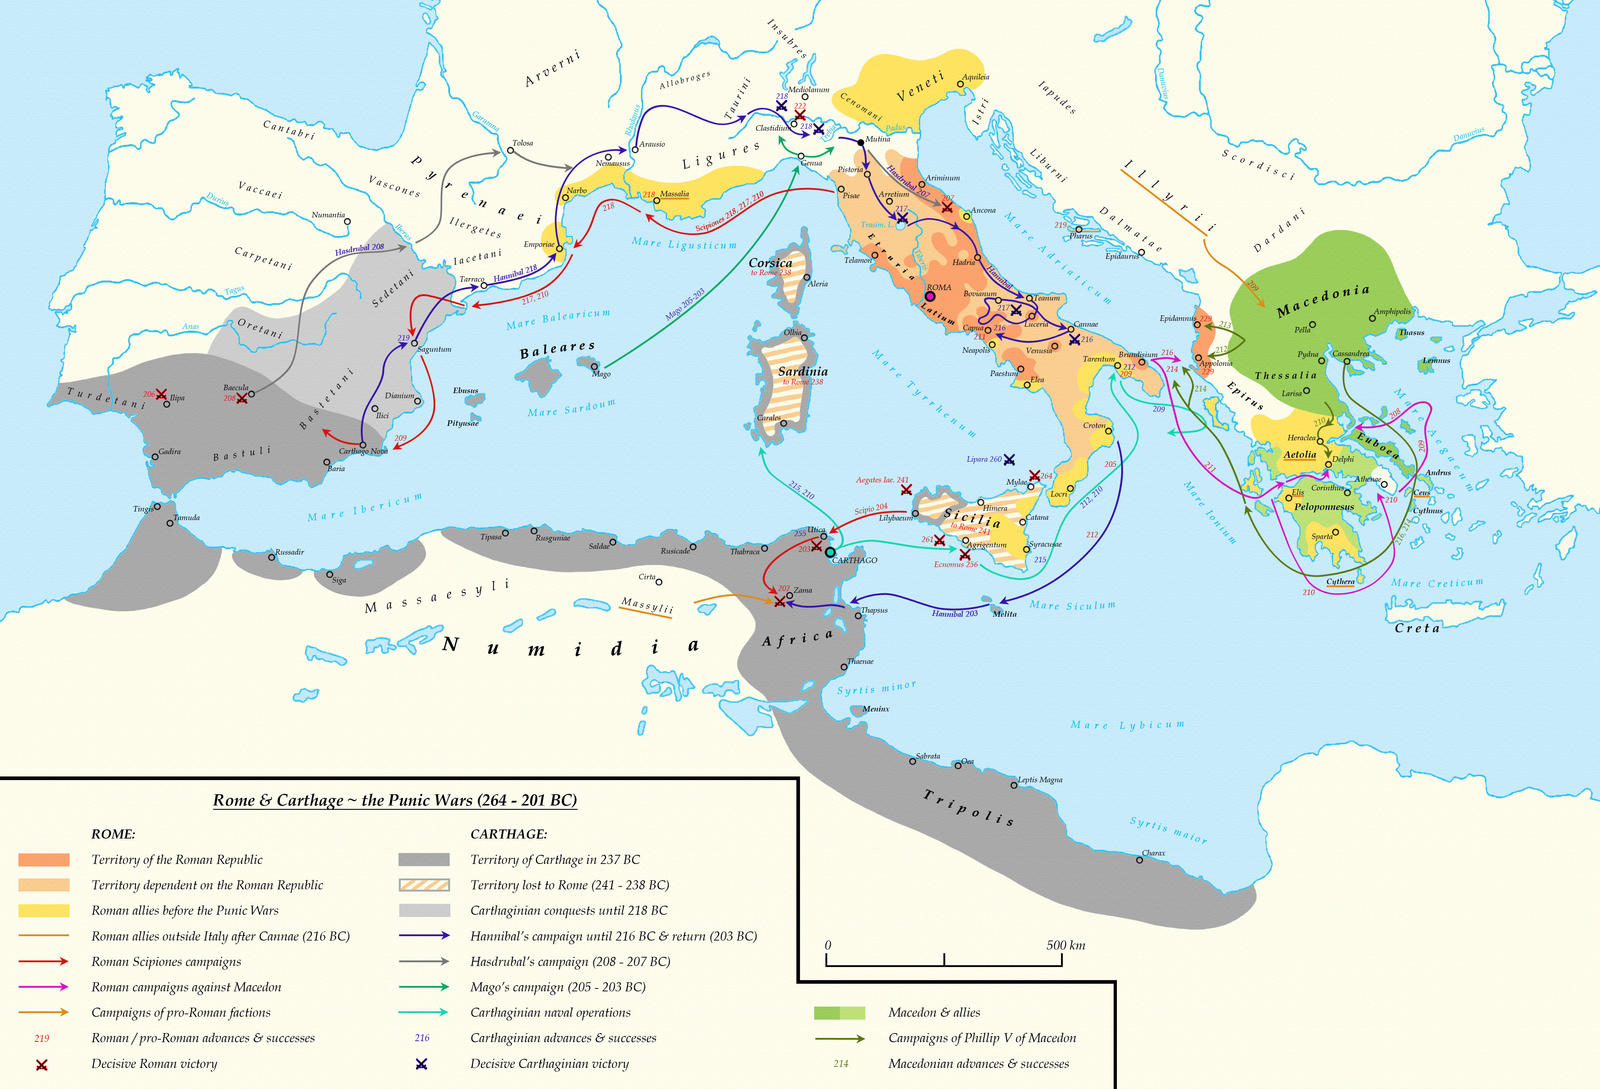 Rome and Carthage ~ The Punic Wars (264 - 201 BC)